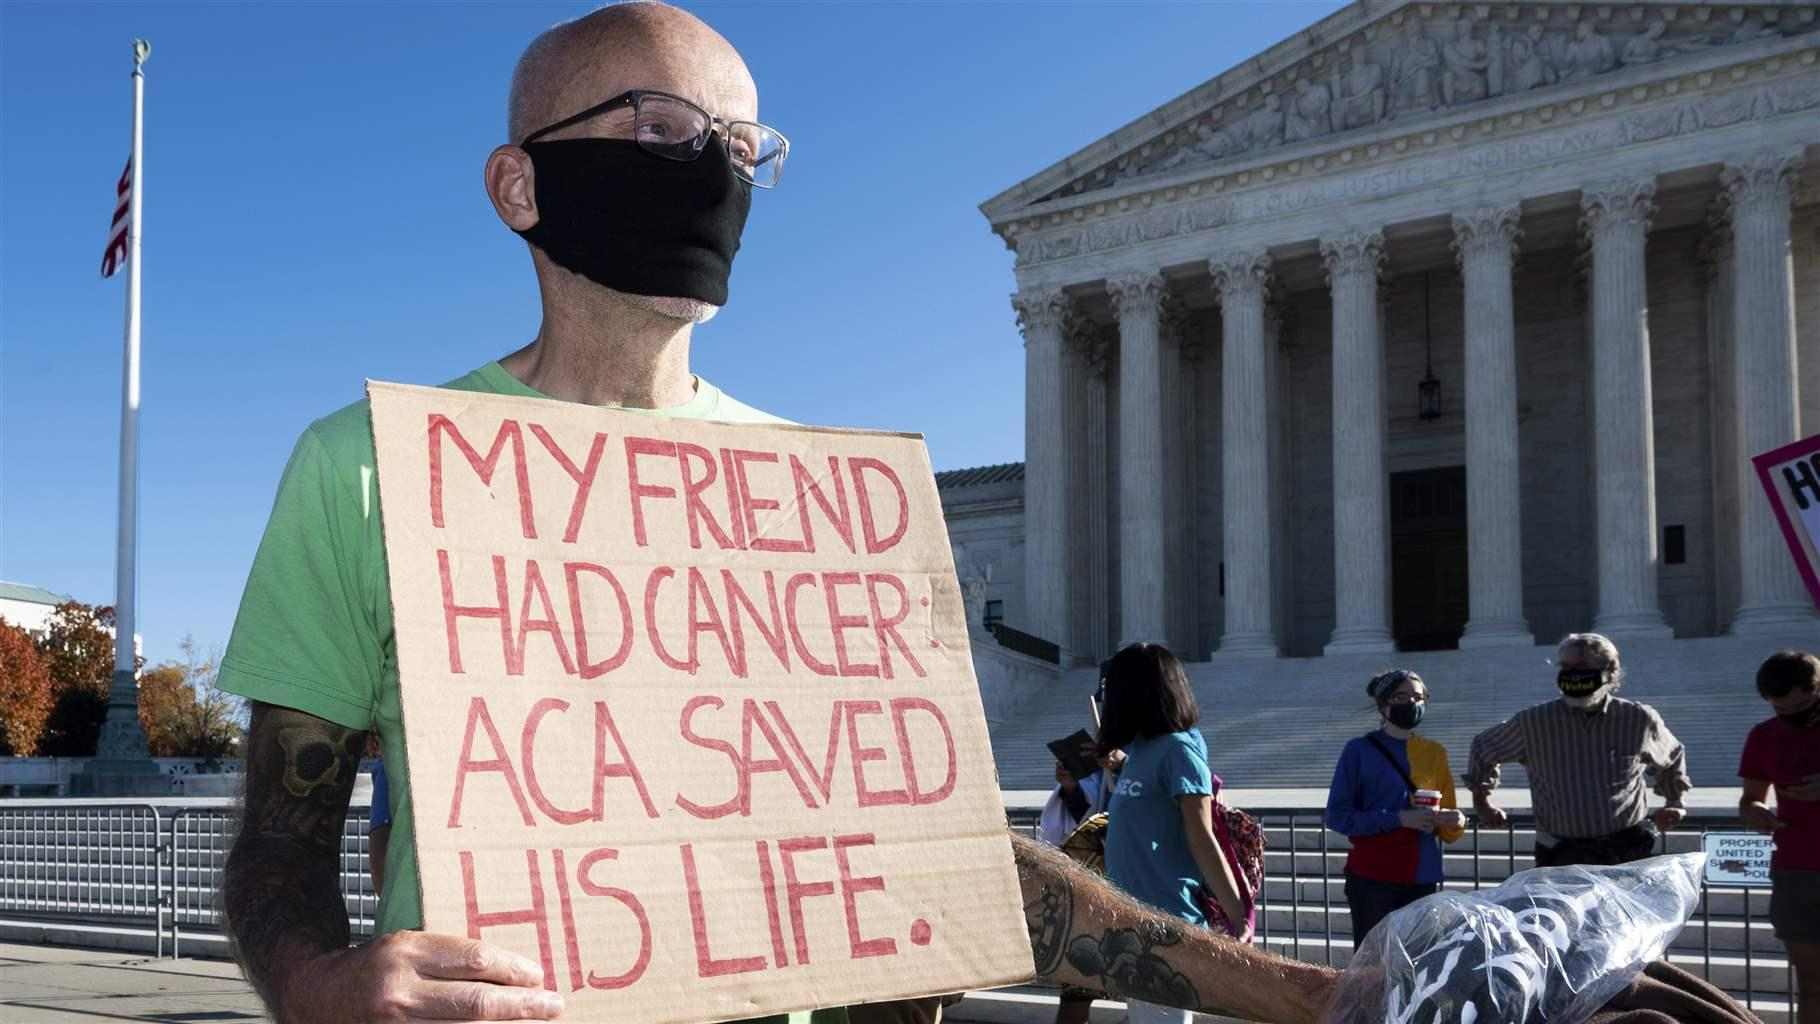 ACA supporter with sign